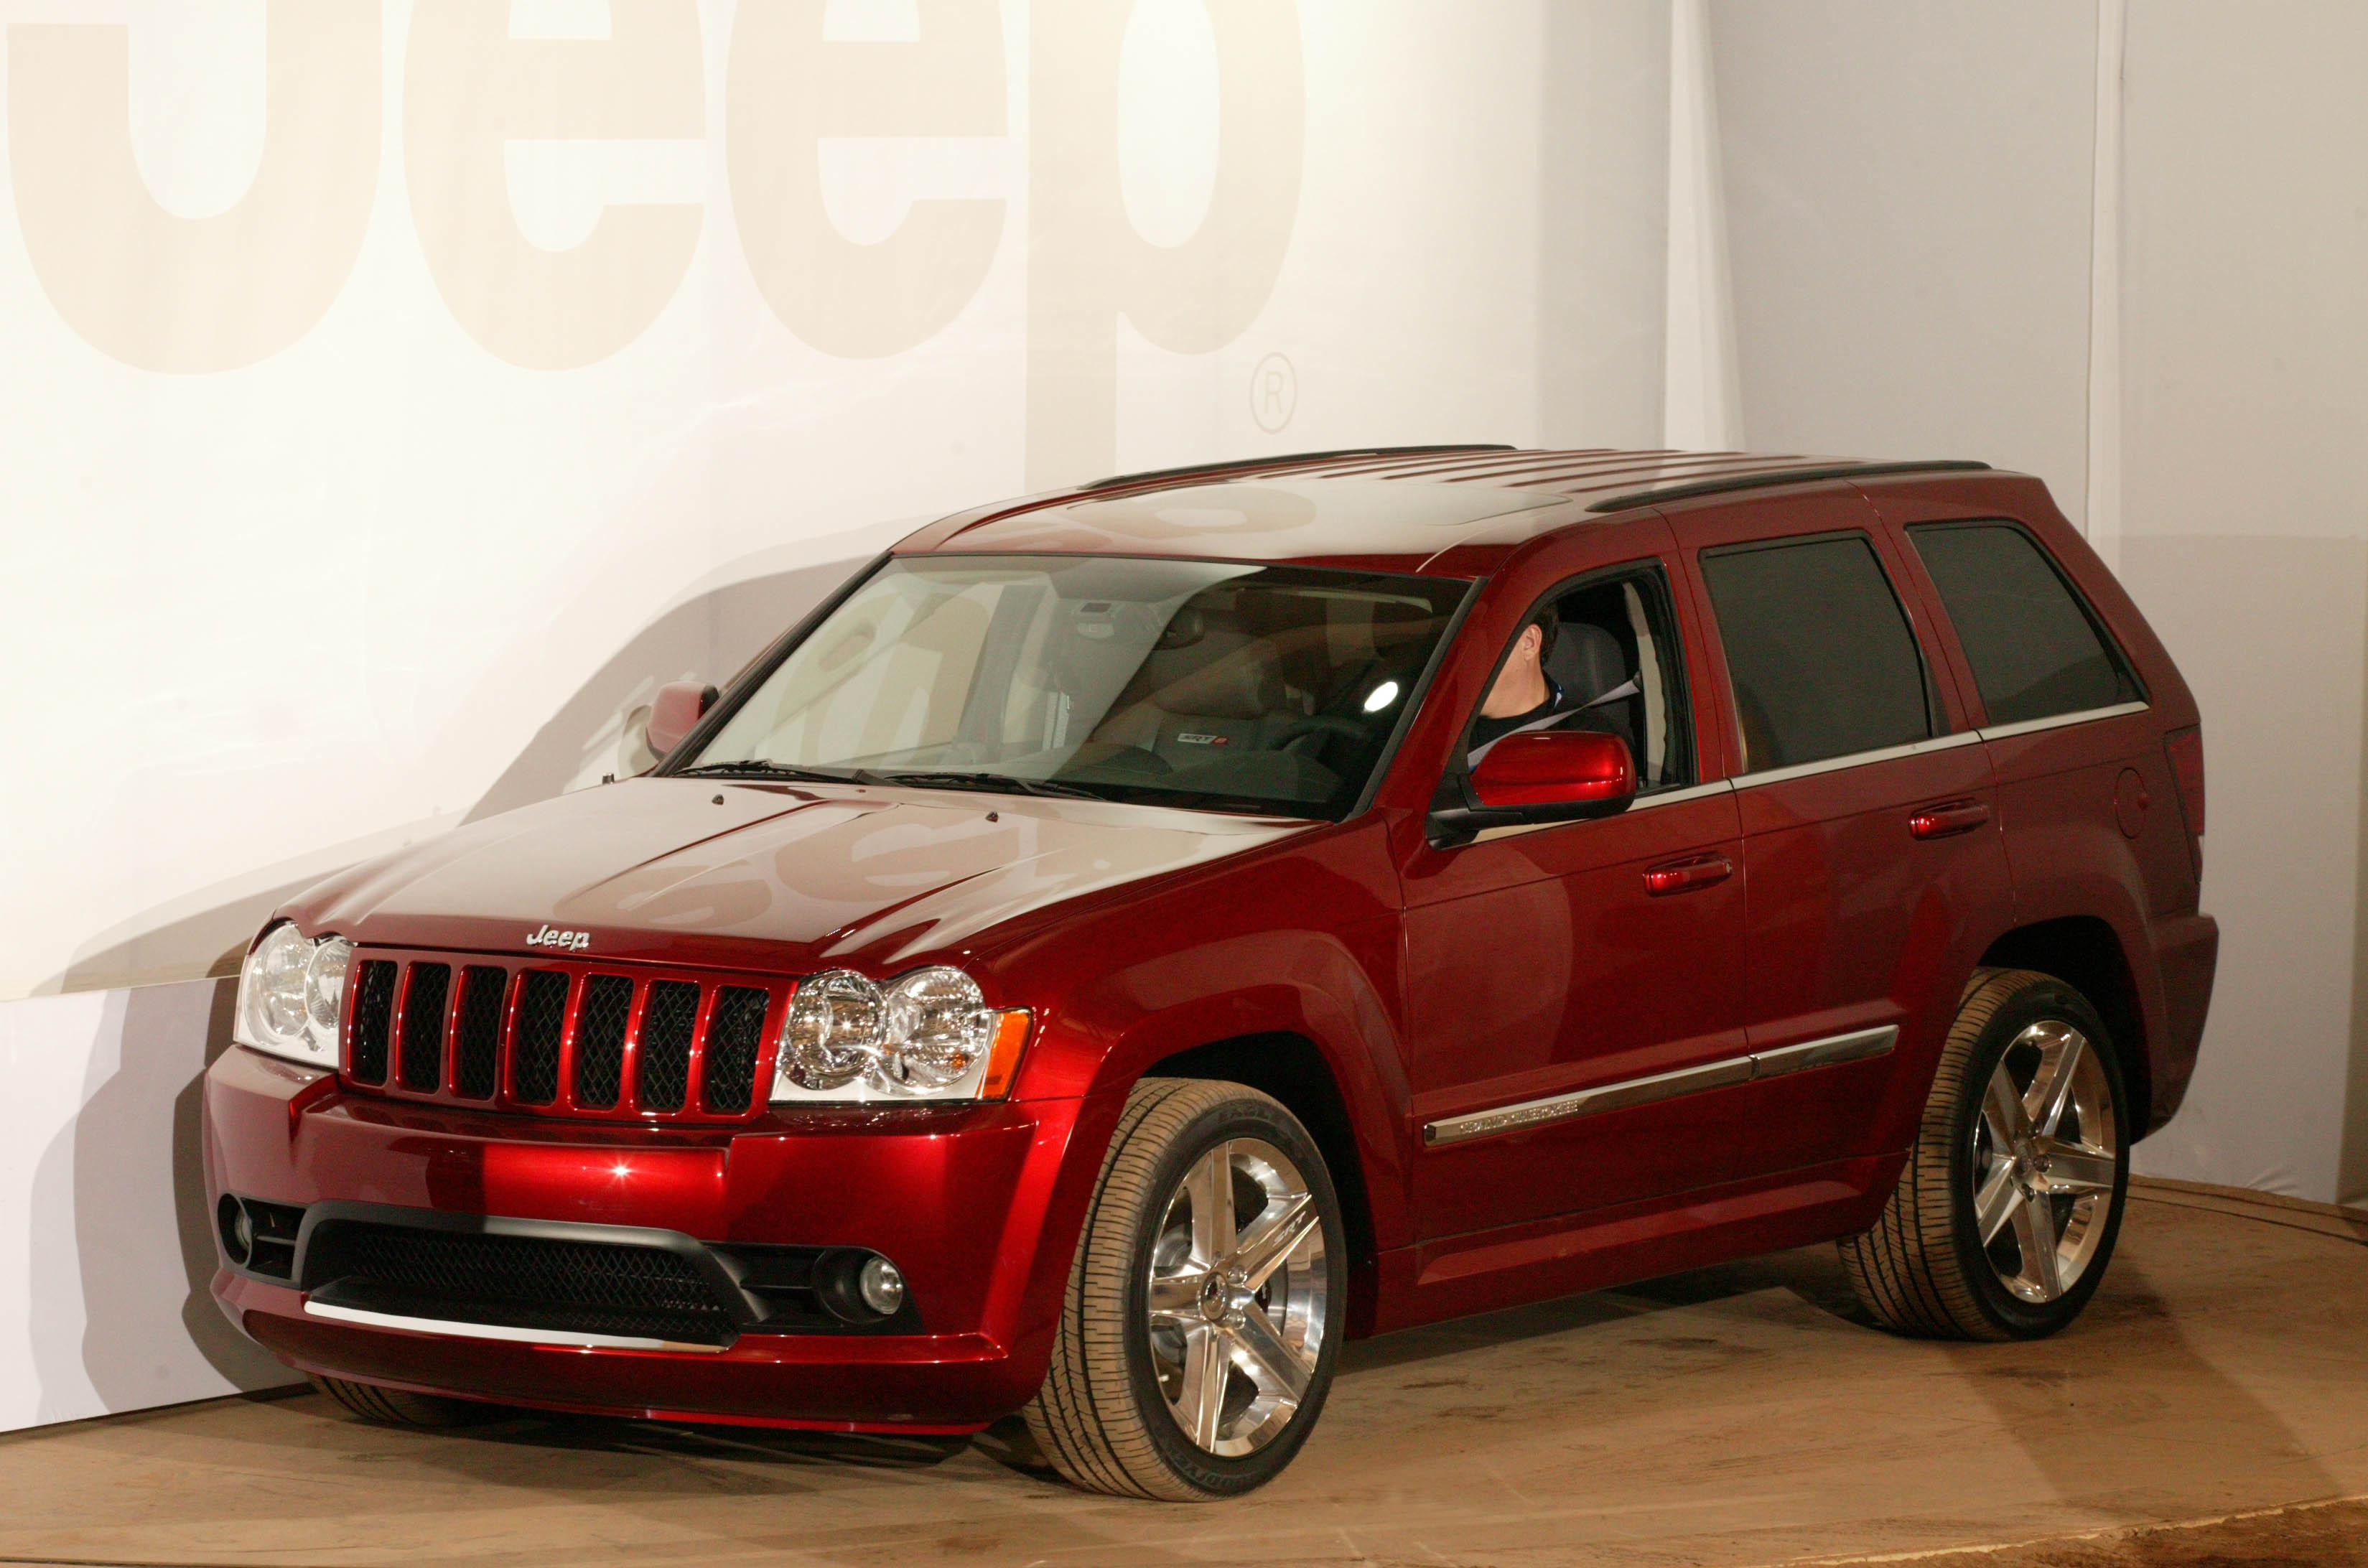 2007 jeep grand cherokee srt8 review - top speed